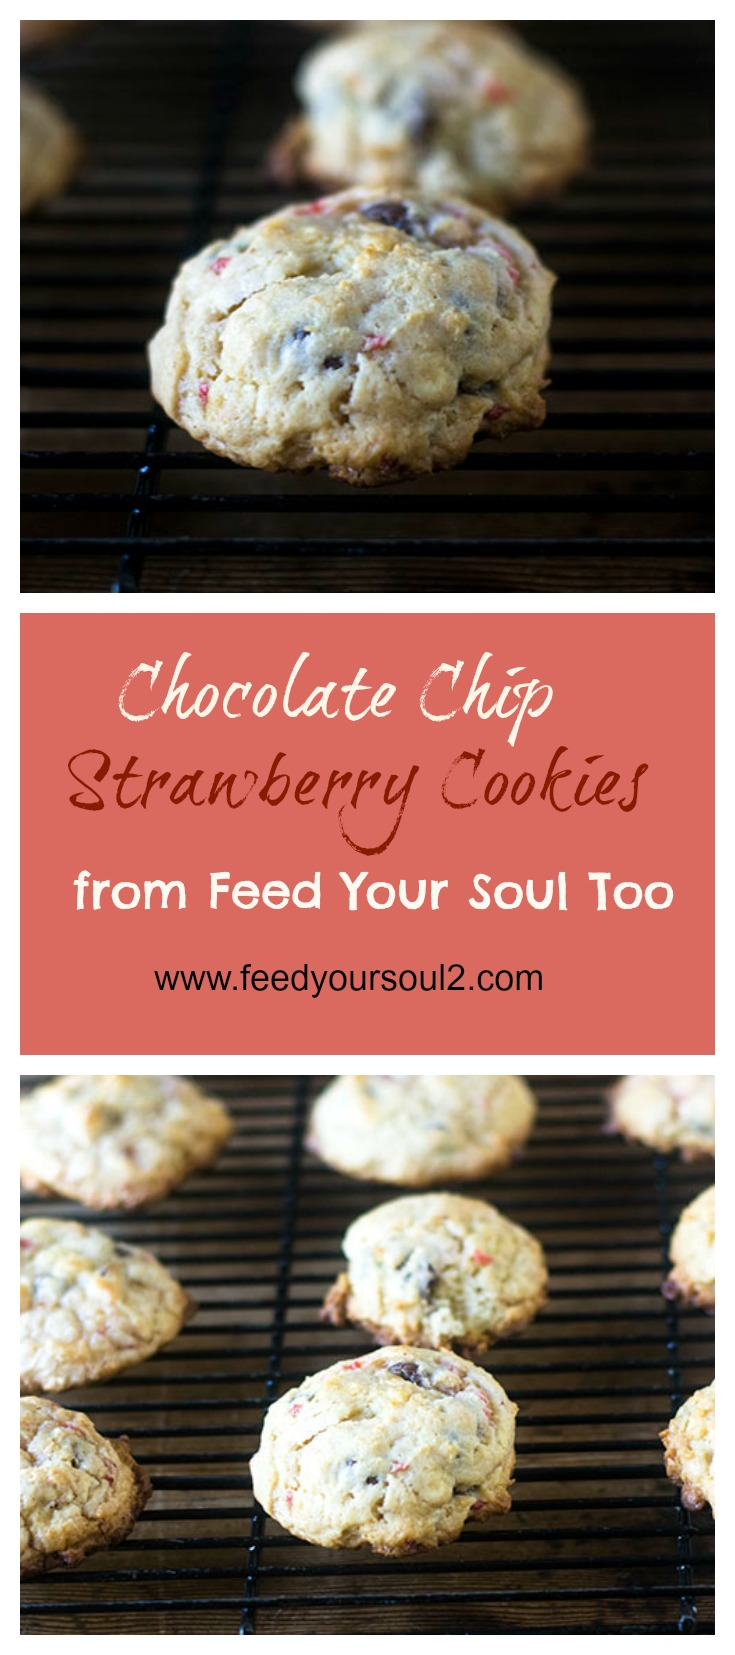 Chocolate Chip Strawberry Cookies #Dessert #cookies #chocolate #strawberry | feedyoursoul2.com